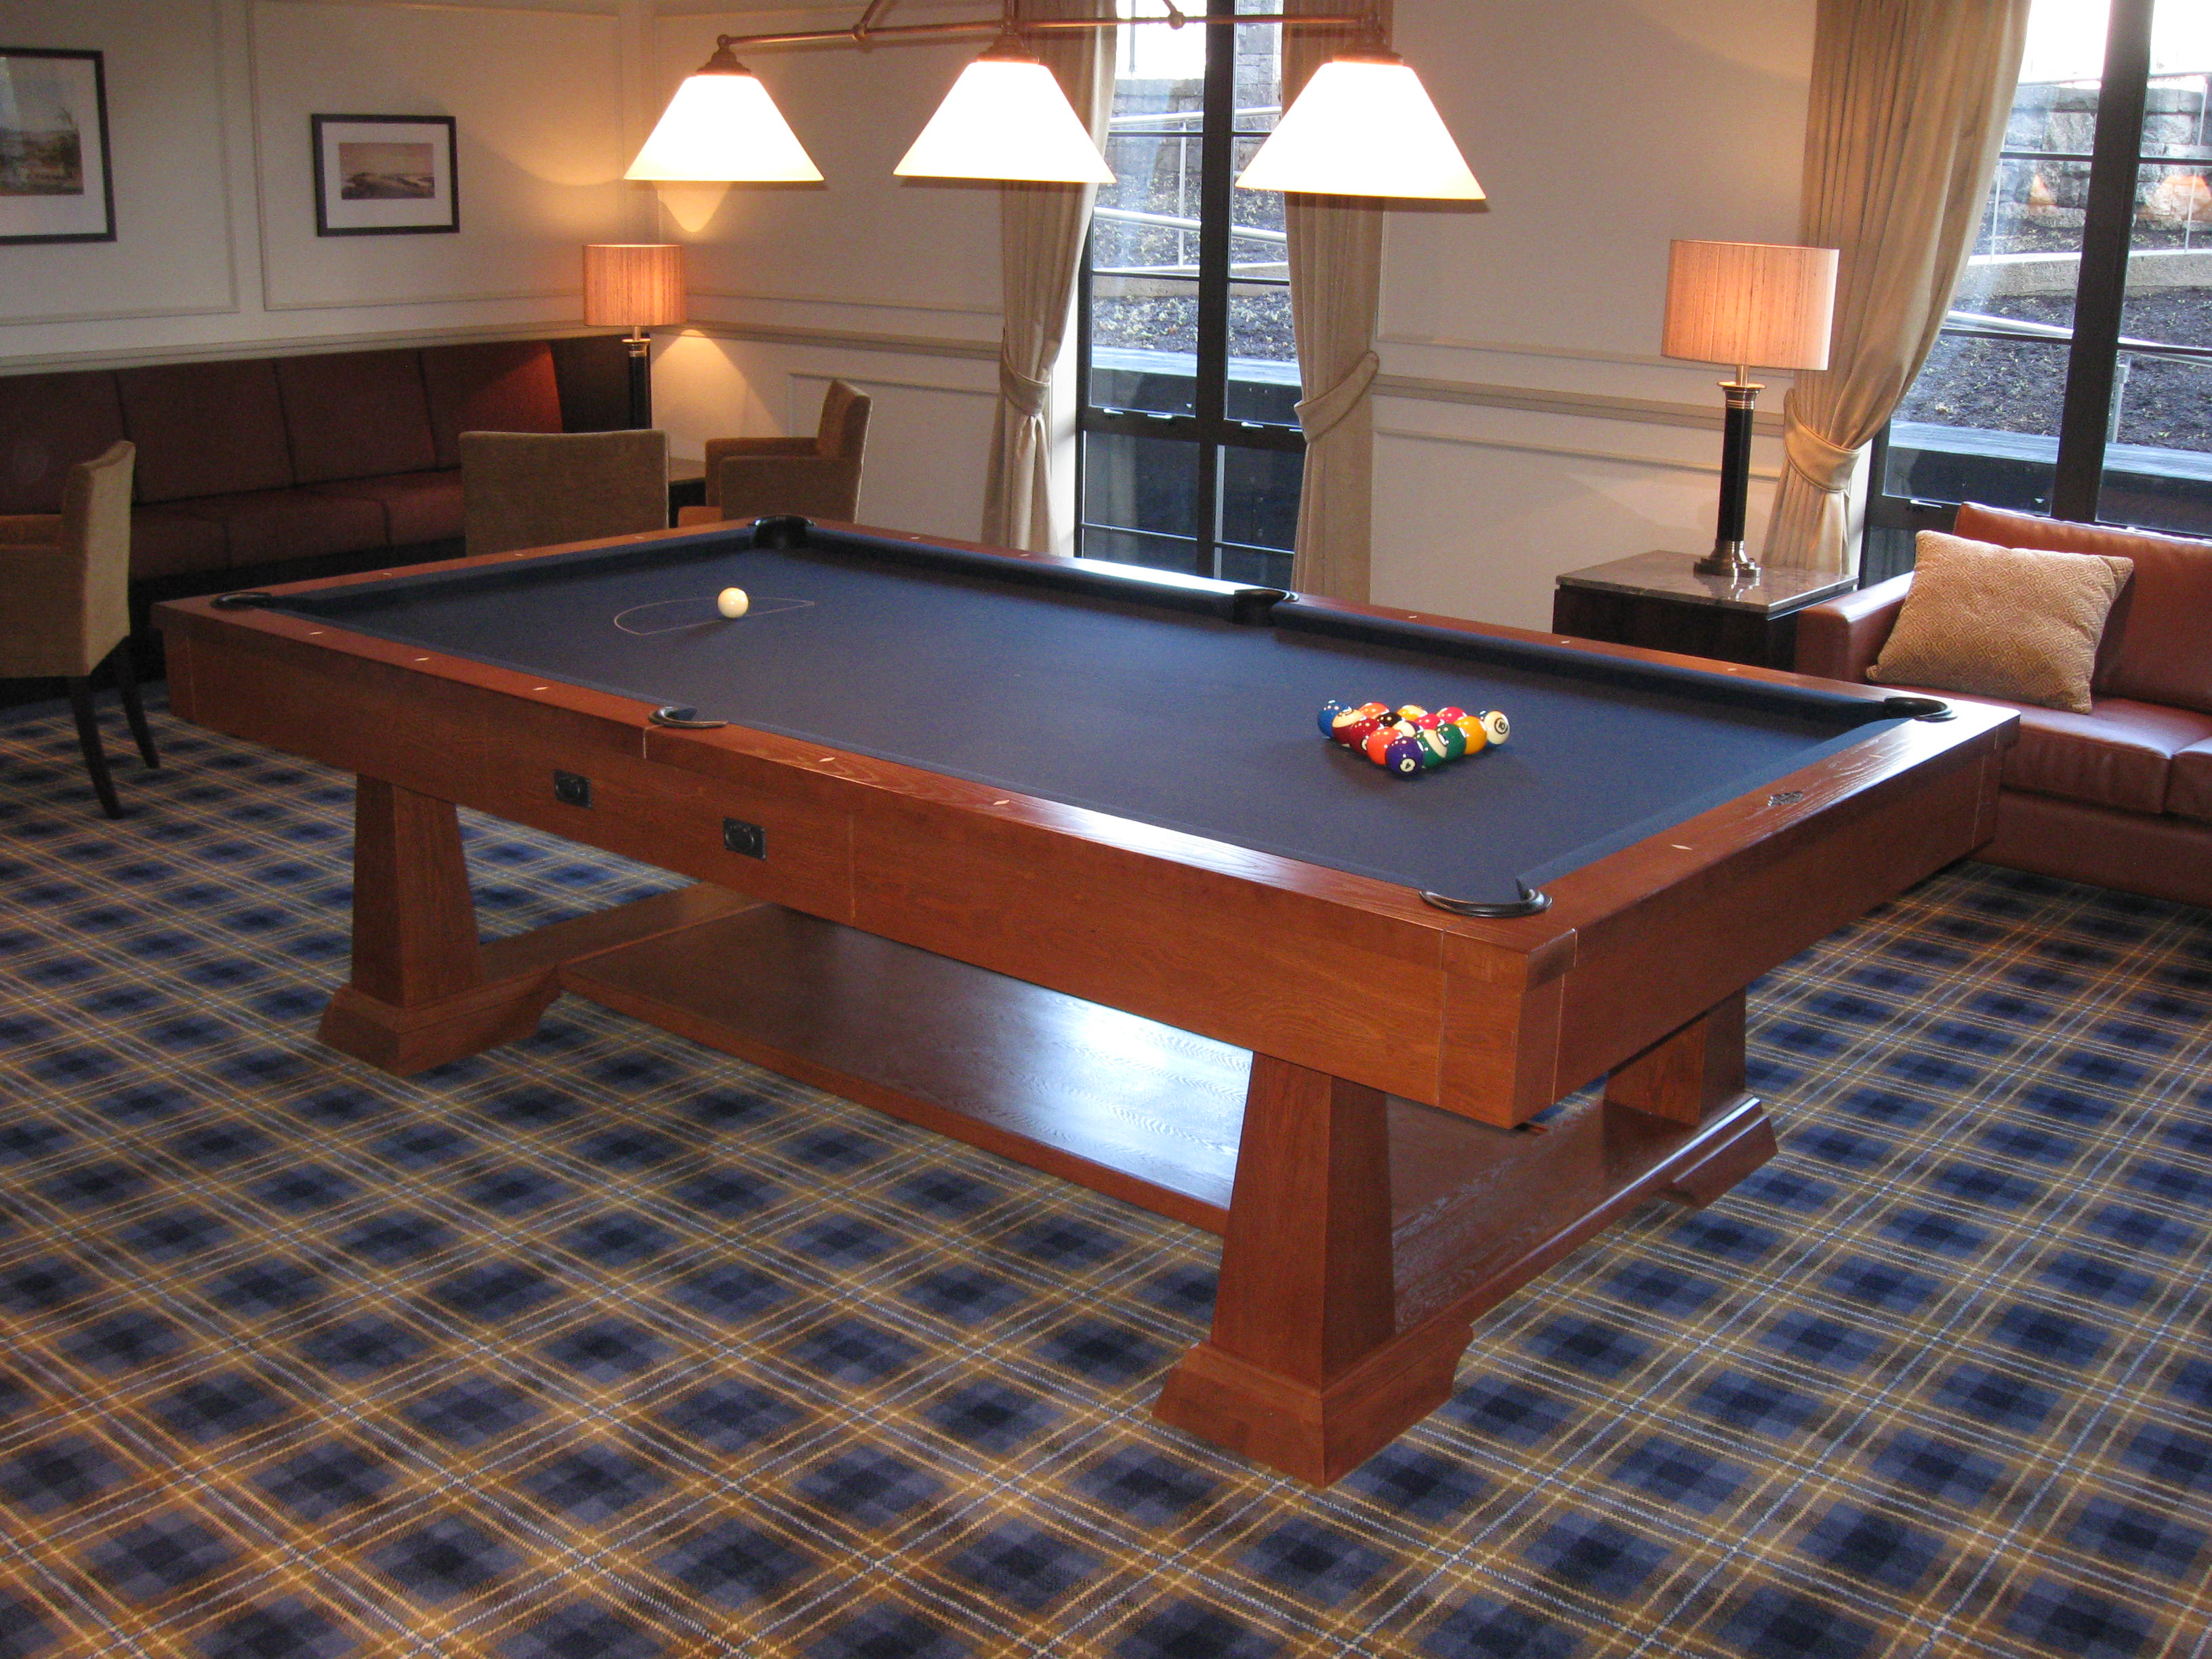 Artisan Designs Pool Table artisan designs pool table Distinct Flared Legs Anchor This Table And The Oak Finish Features Unique Fly Specking And Cow Tailing Detail Including New Premium Player Accessory